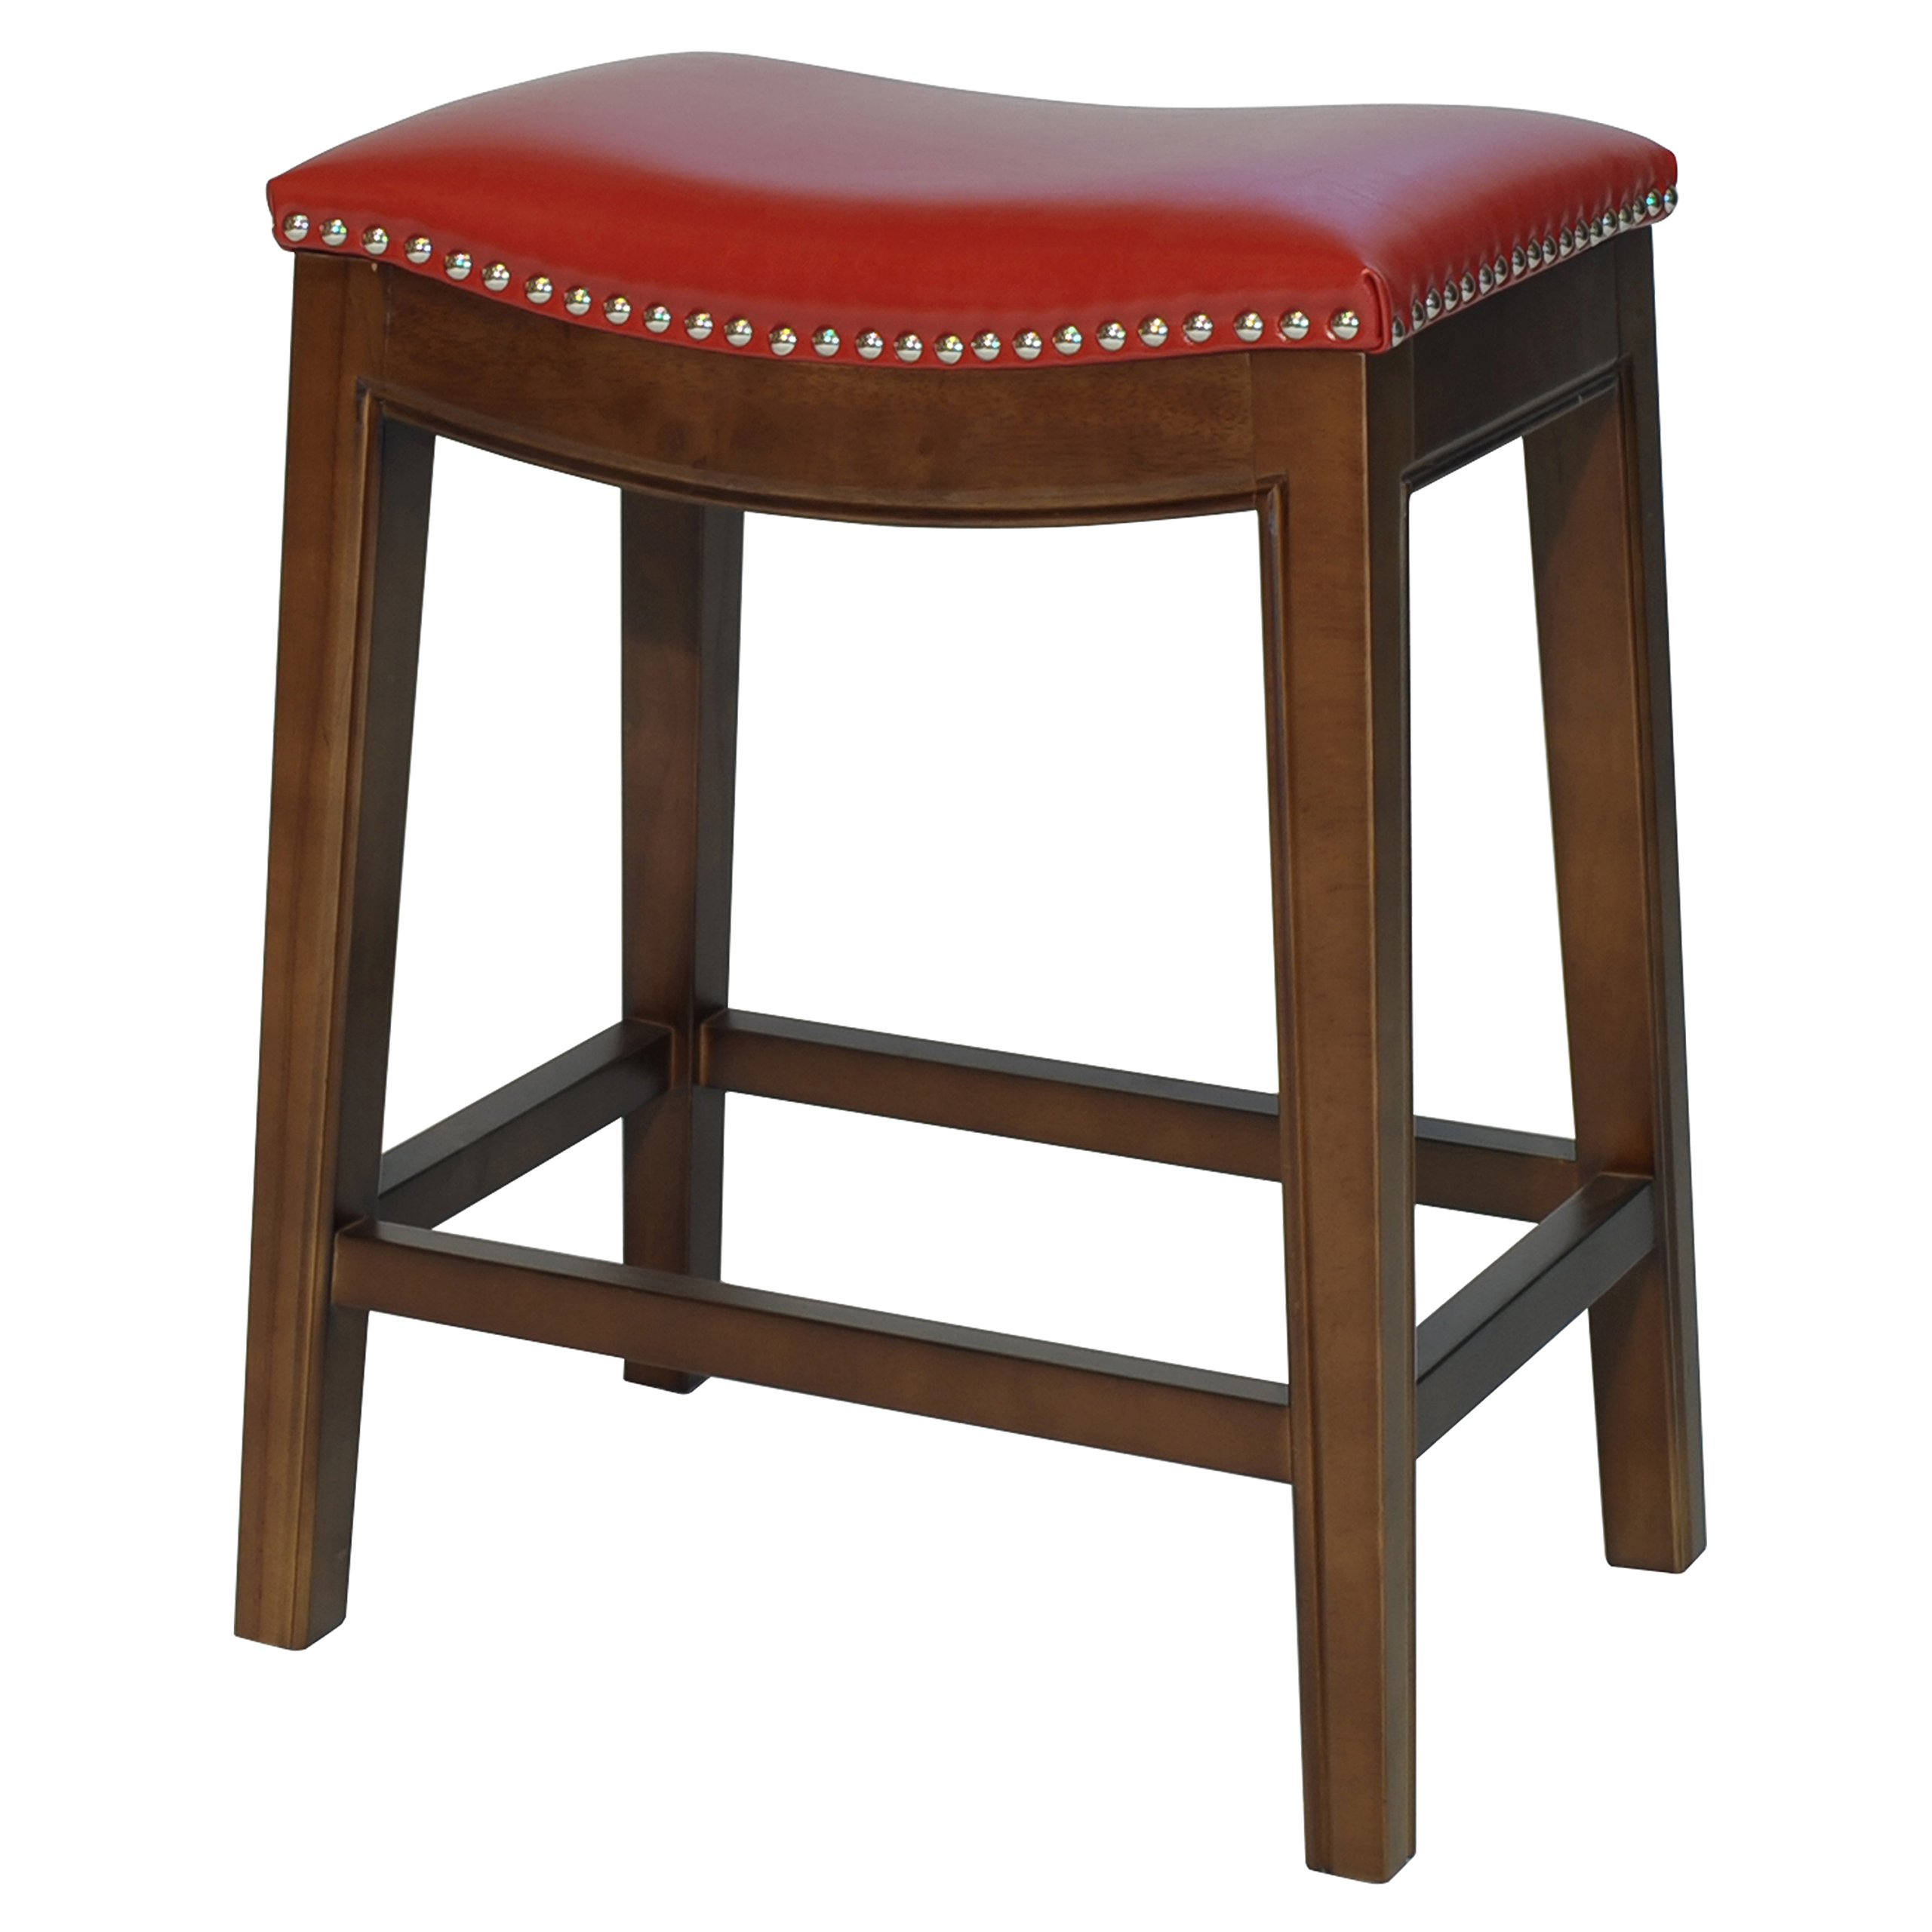 New Pacific Direct Elmo Bonded Leather Counter Stool,Cinnamon Brown Legs,Red